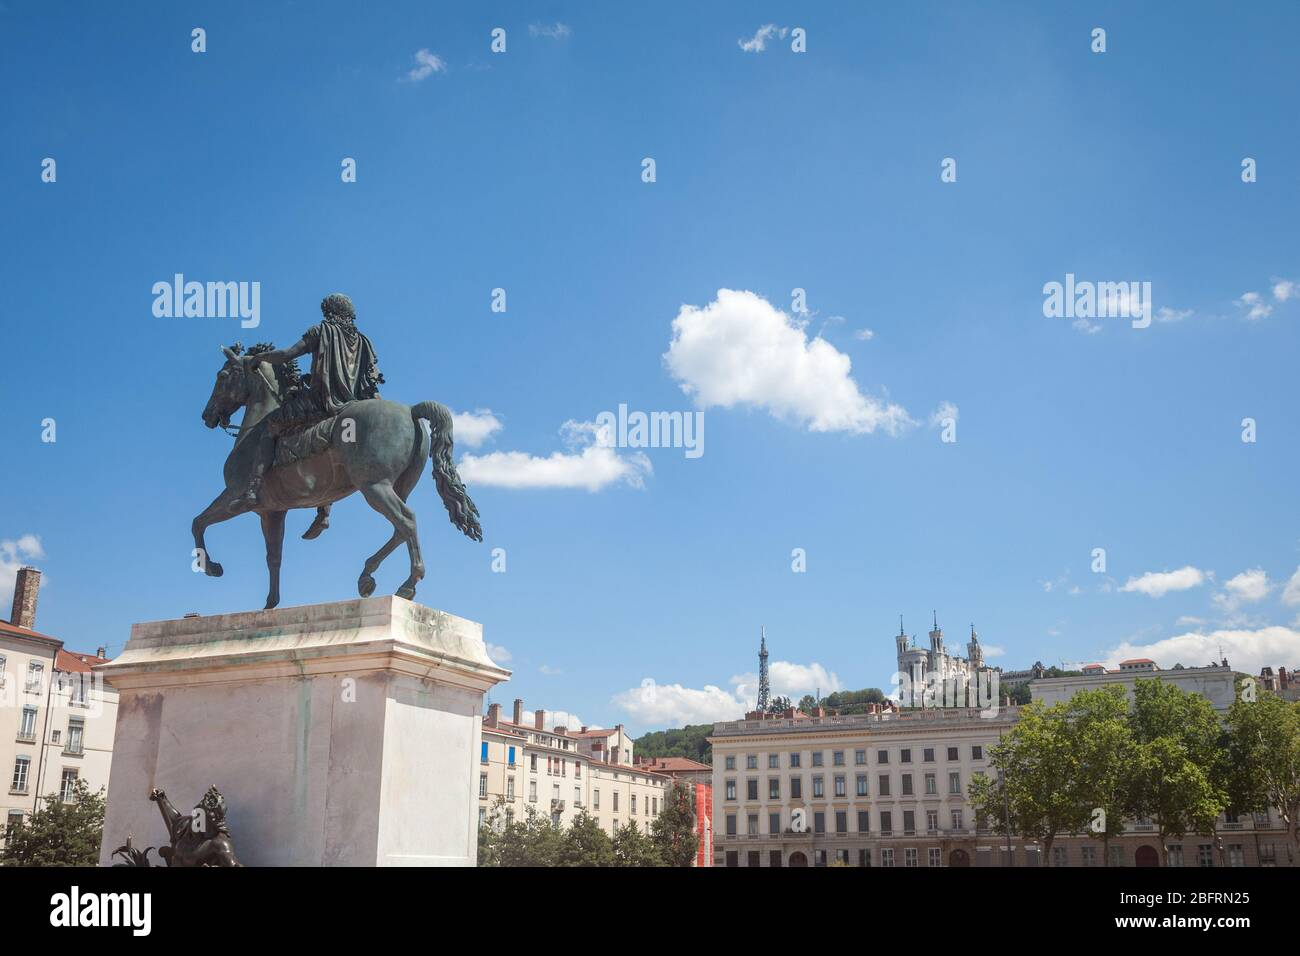 Roi Louis XIV statue on the Place Bellecour Square, in downtown Lyon, with the Basilique Notre Dame de Fourviere Church in background in summer.  pict Stock Photo